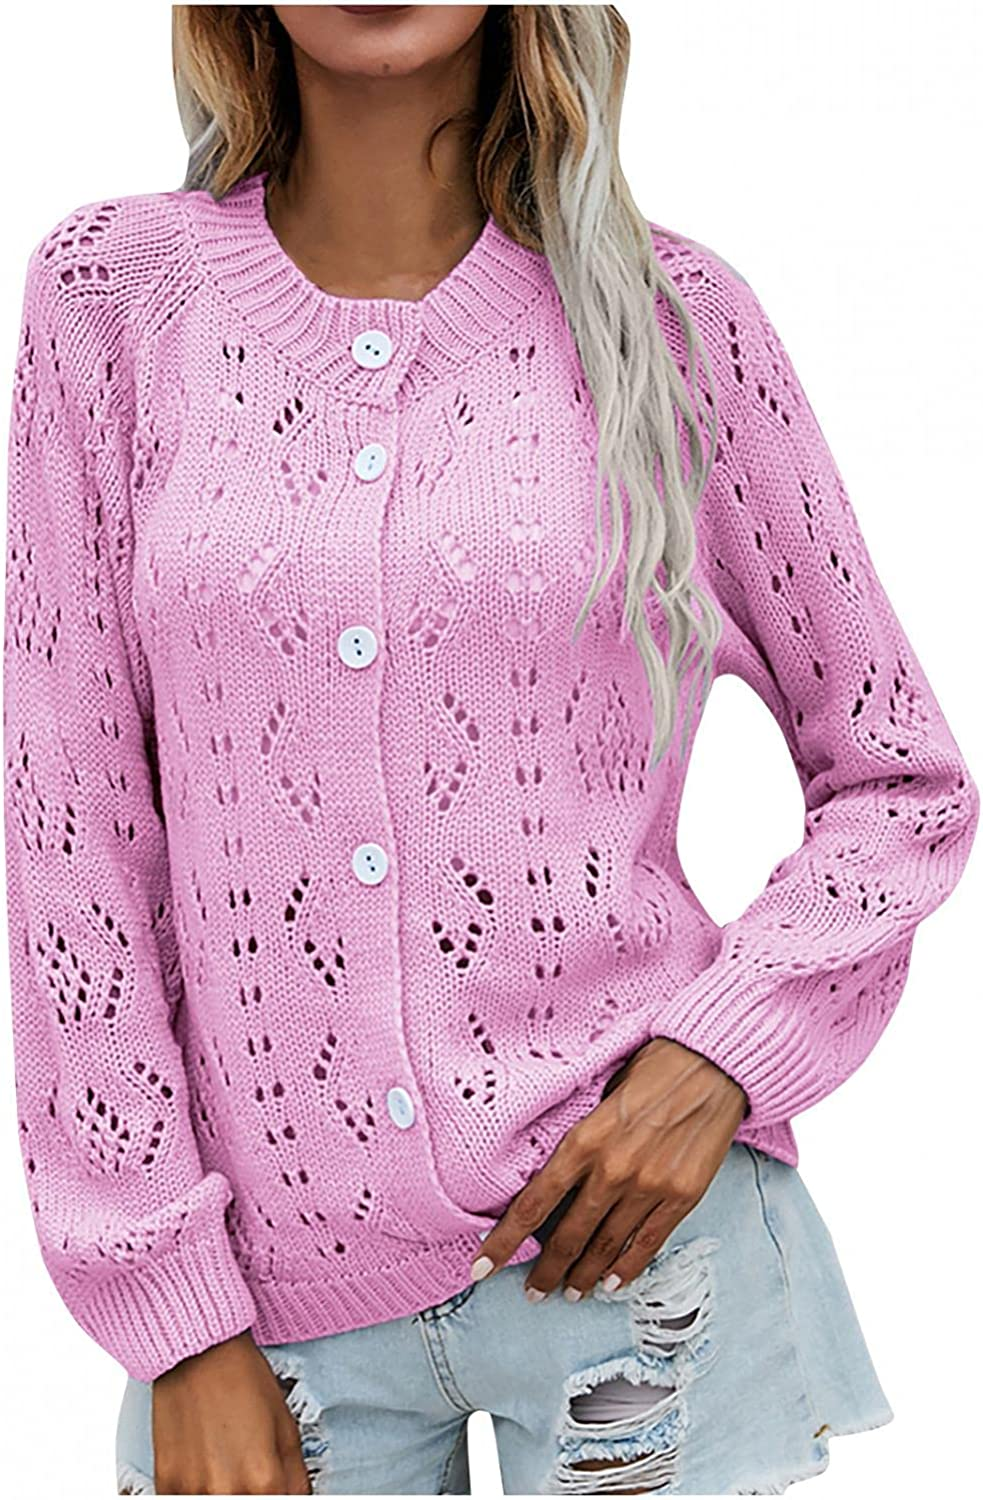 Fall Sweaters for Women Hollow Out Solid Color Knitwear Long Sleeve Casual Cardigan Open Front Button Down Shirt